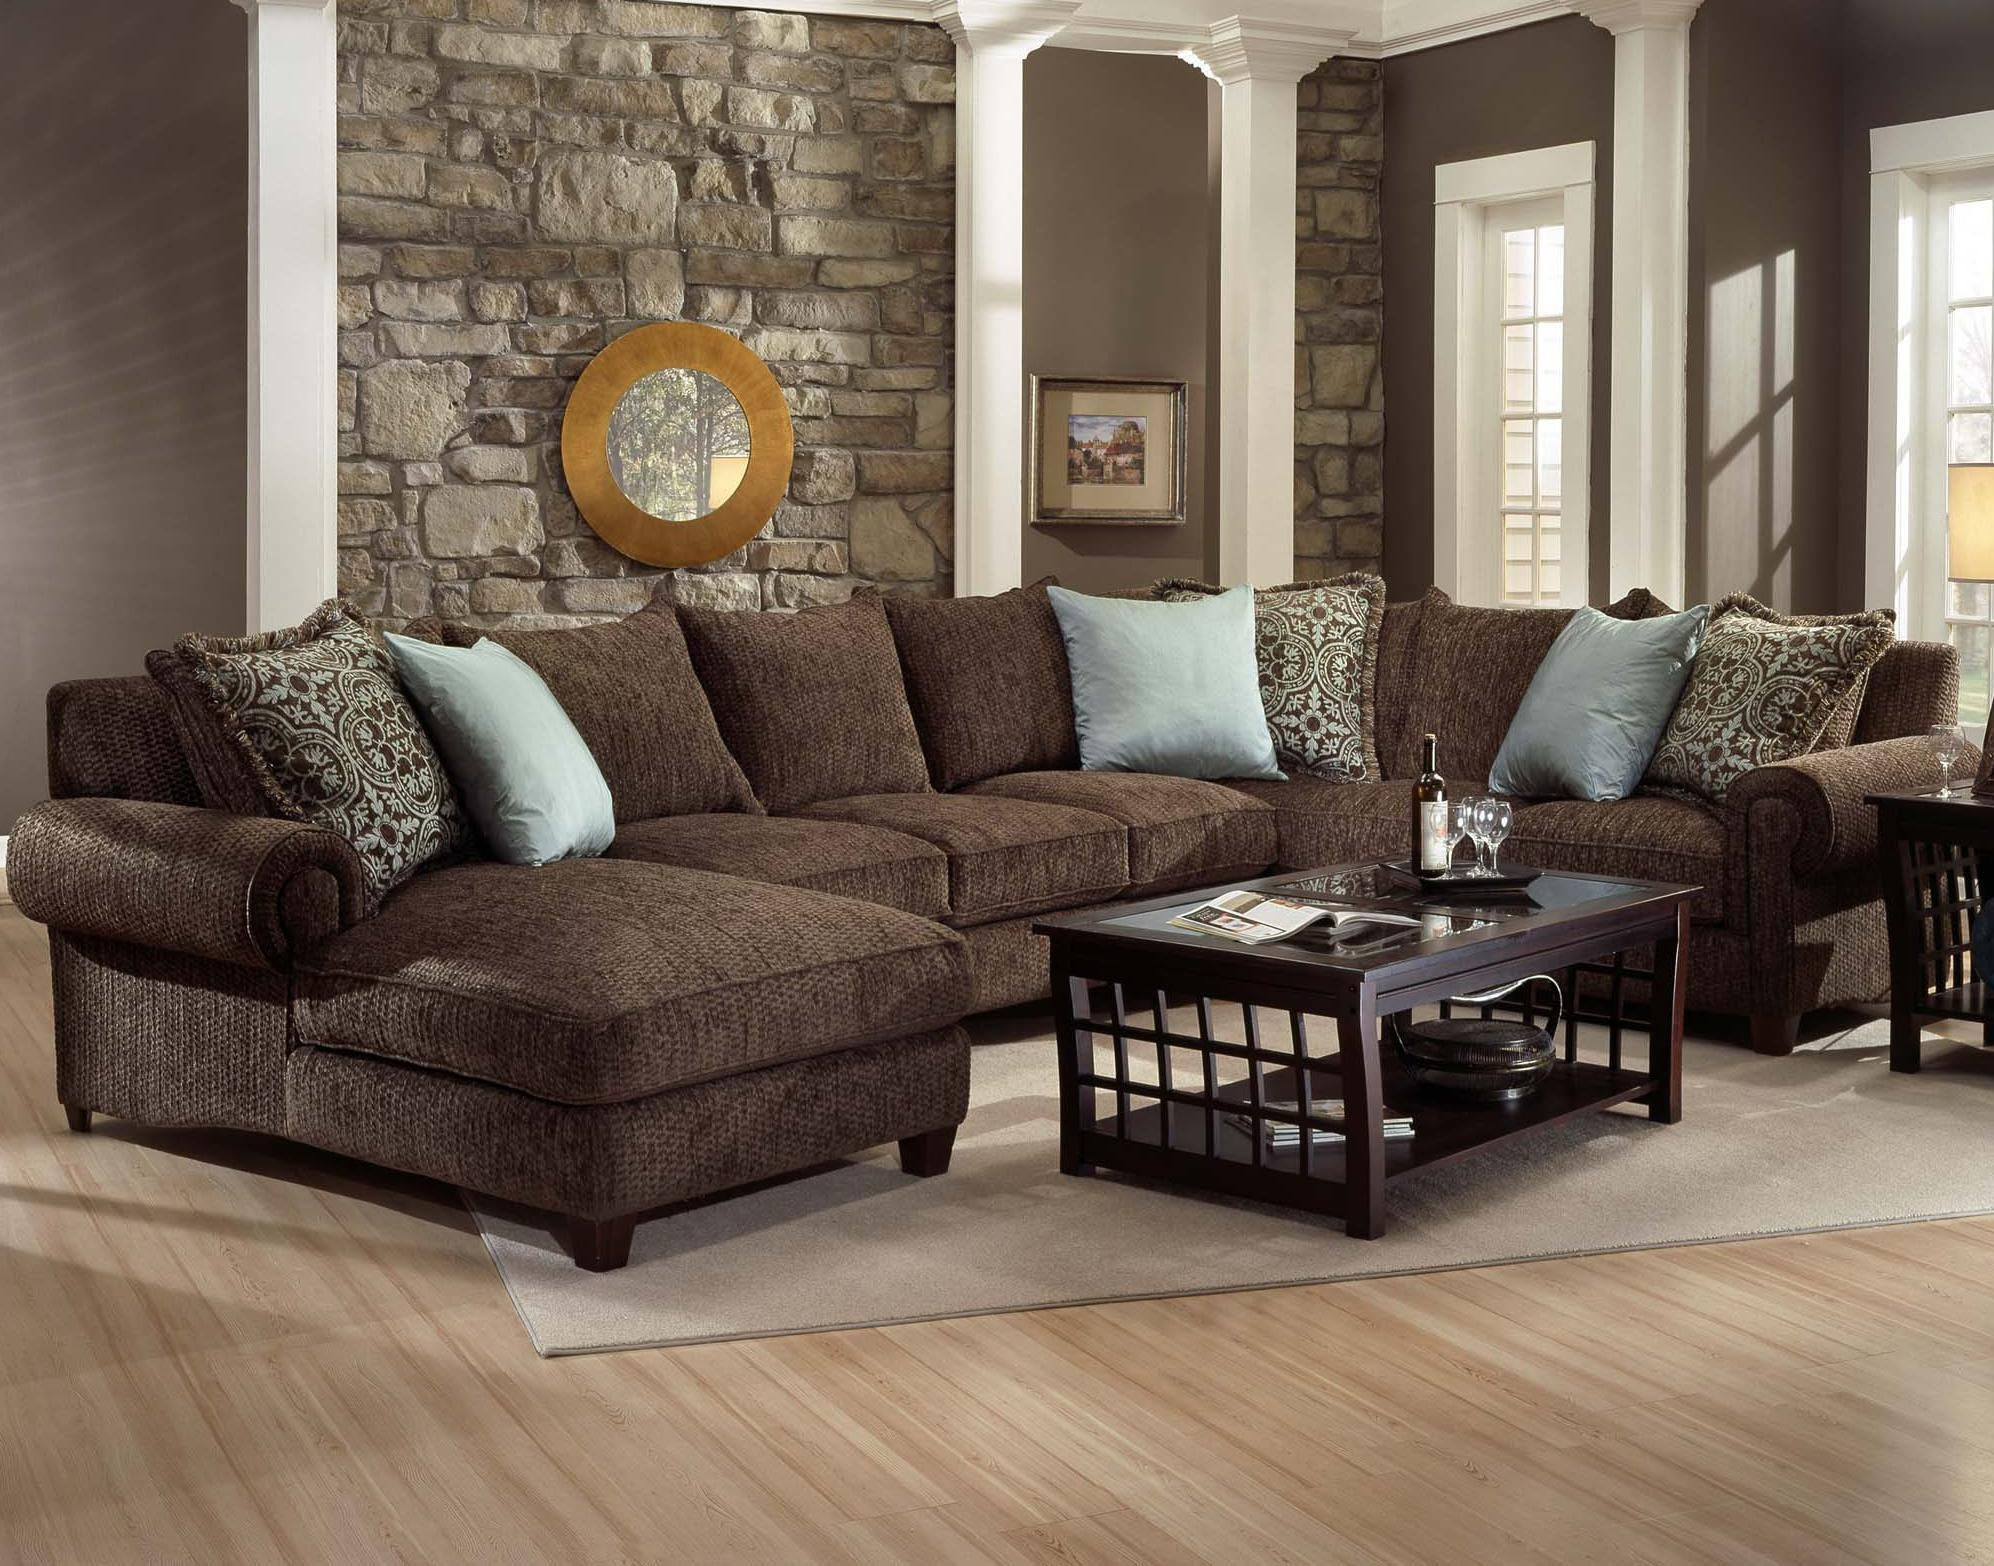 Sofas Center : Sectional Down Filled Sofa Feather Slipcover With Regard To Down Filled Sofa Sectional (View 10 of 15)